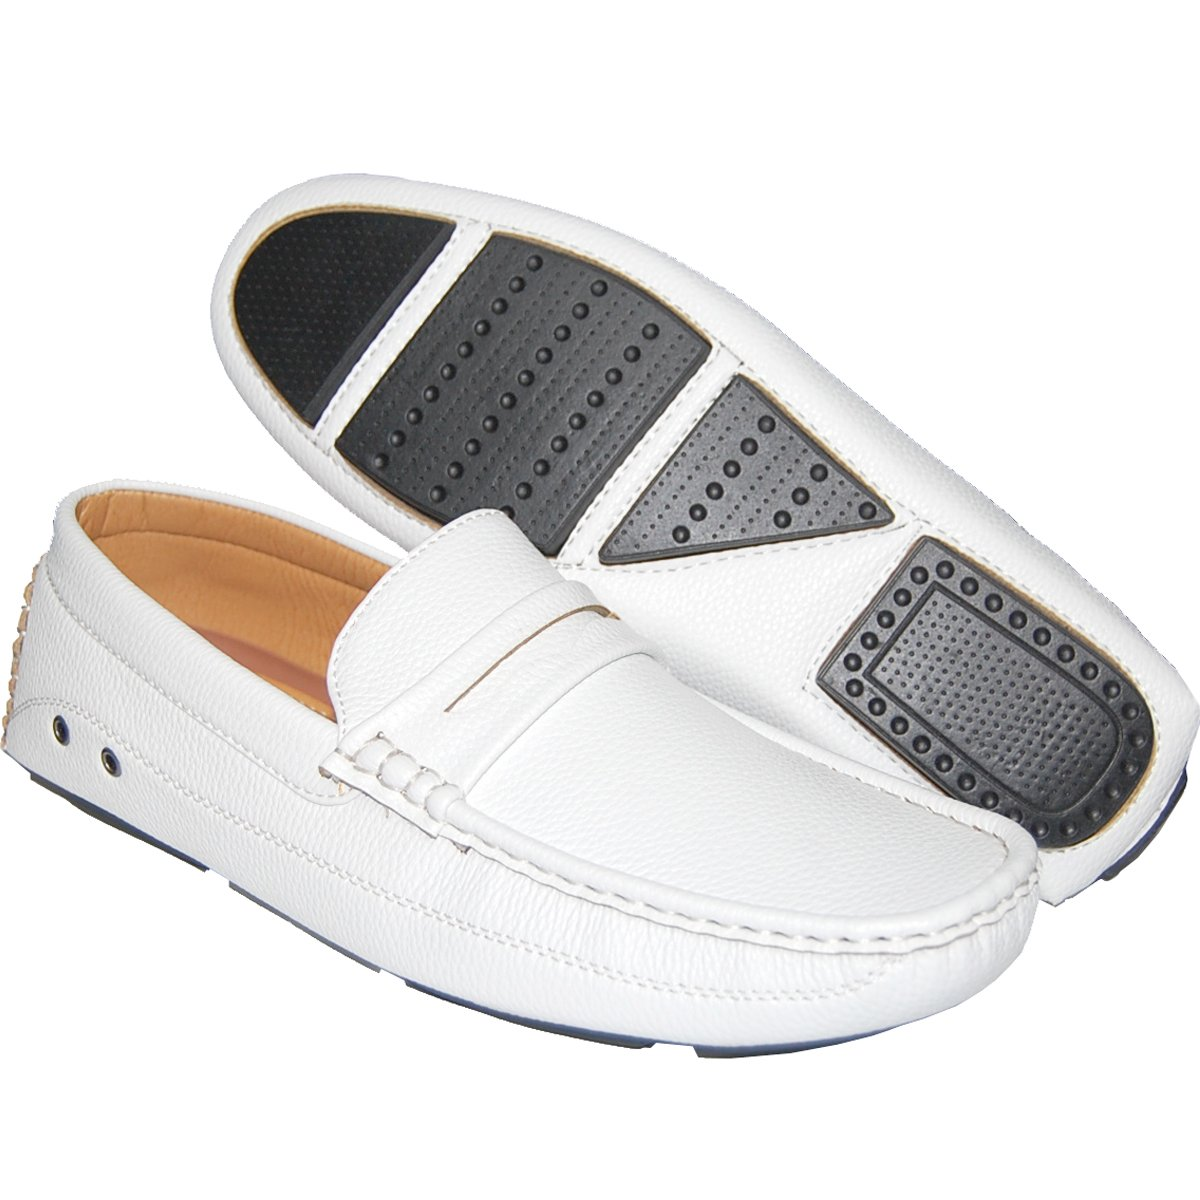 KRAZY SHOE ARTISTS Shoe Artists Classic White Penny Loafer - Men (15D US)